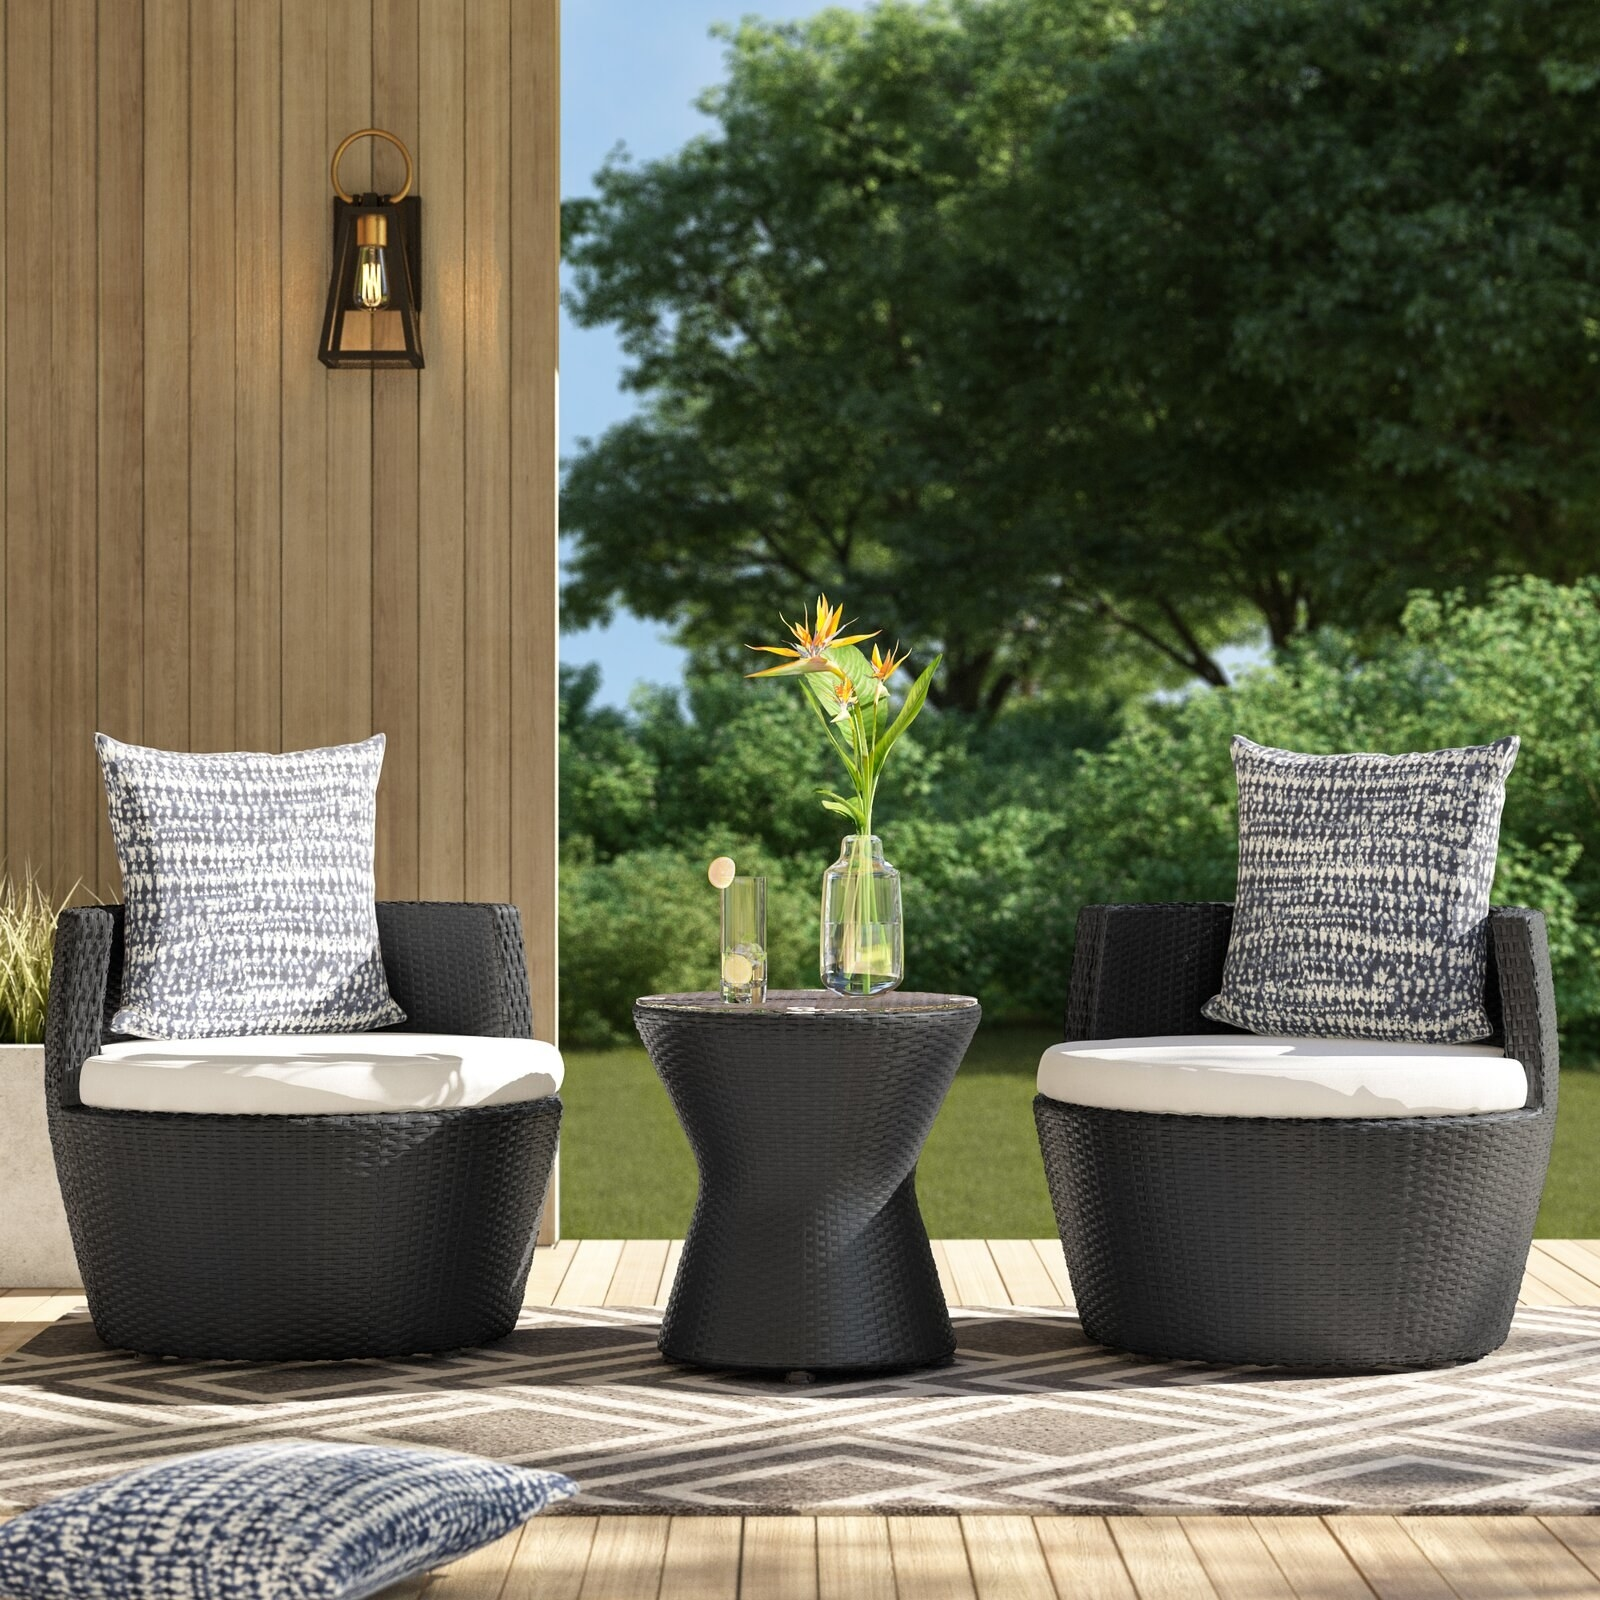 The small woven rattan table and two matching seats with foam-filled cushions